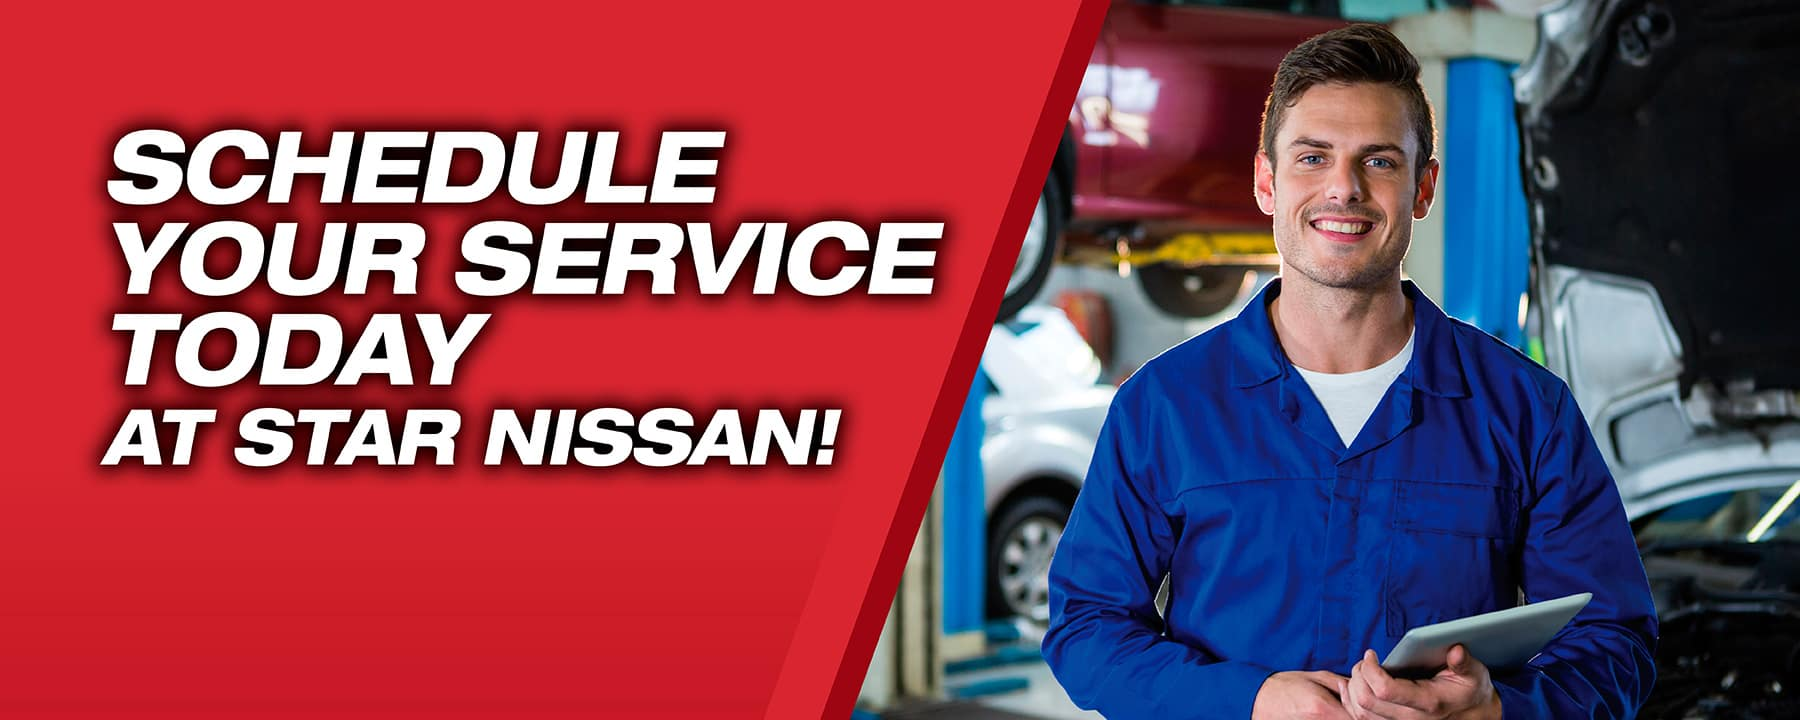 Schedule Your Service at Star Nissan today!